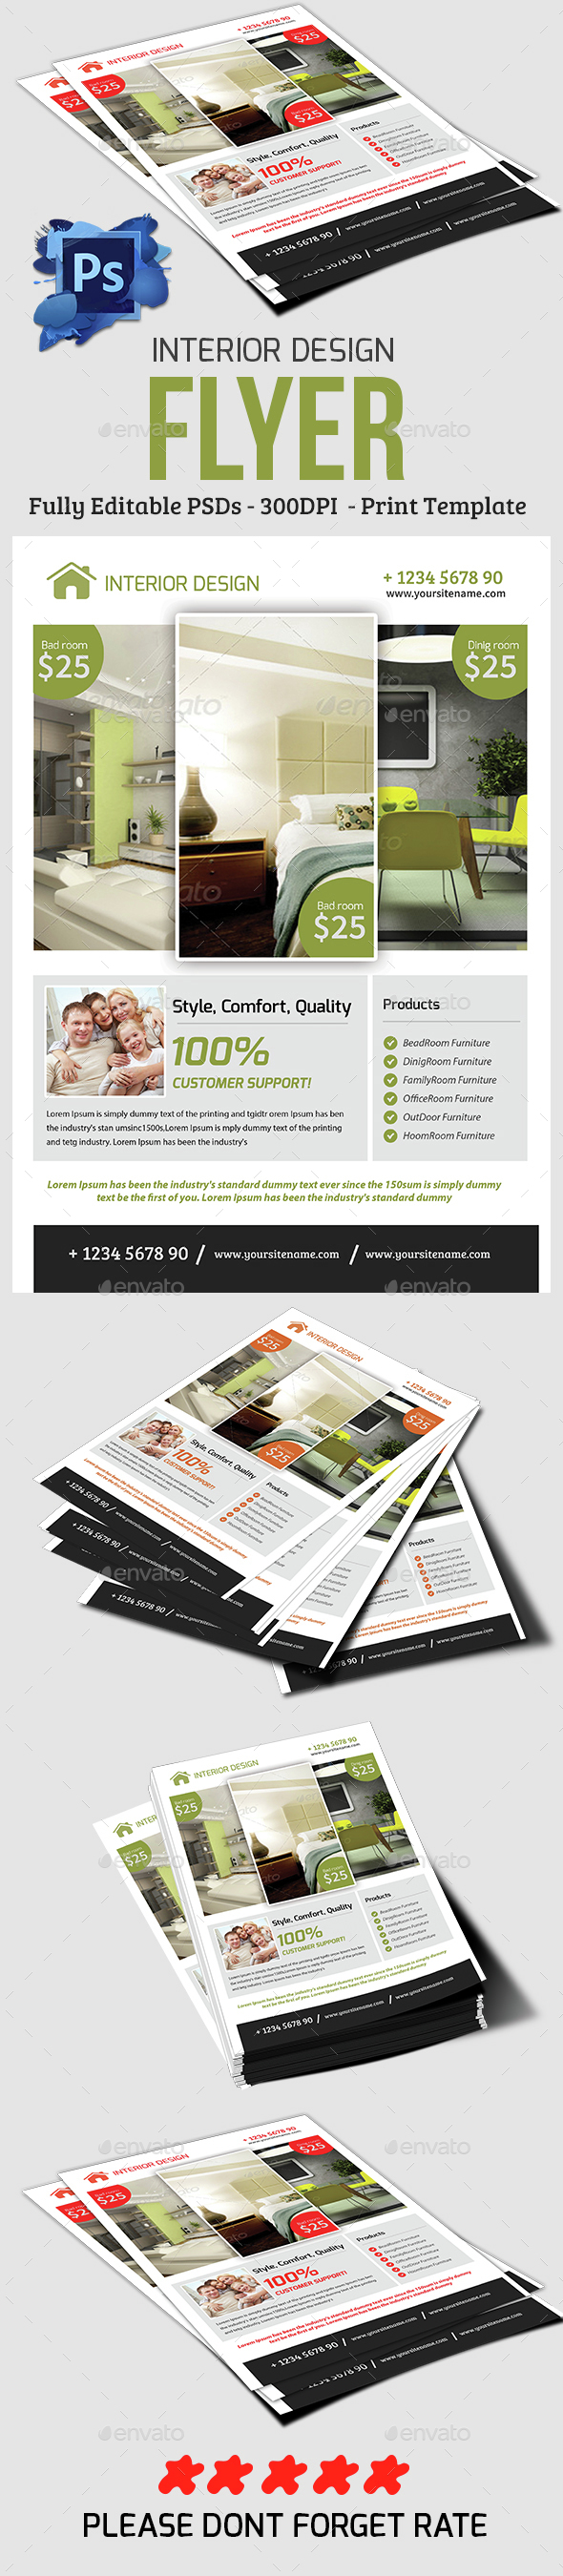 Interior Design Flyer - Commerce Flyers